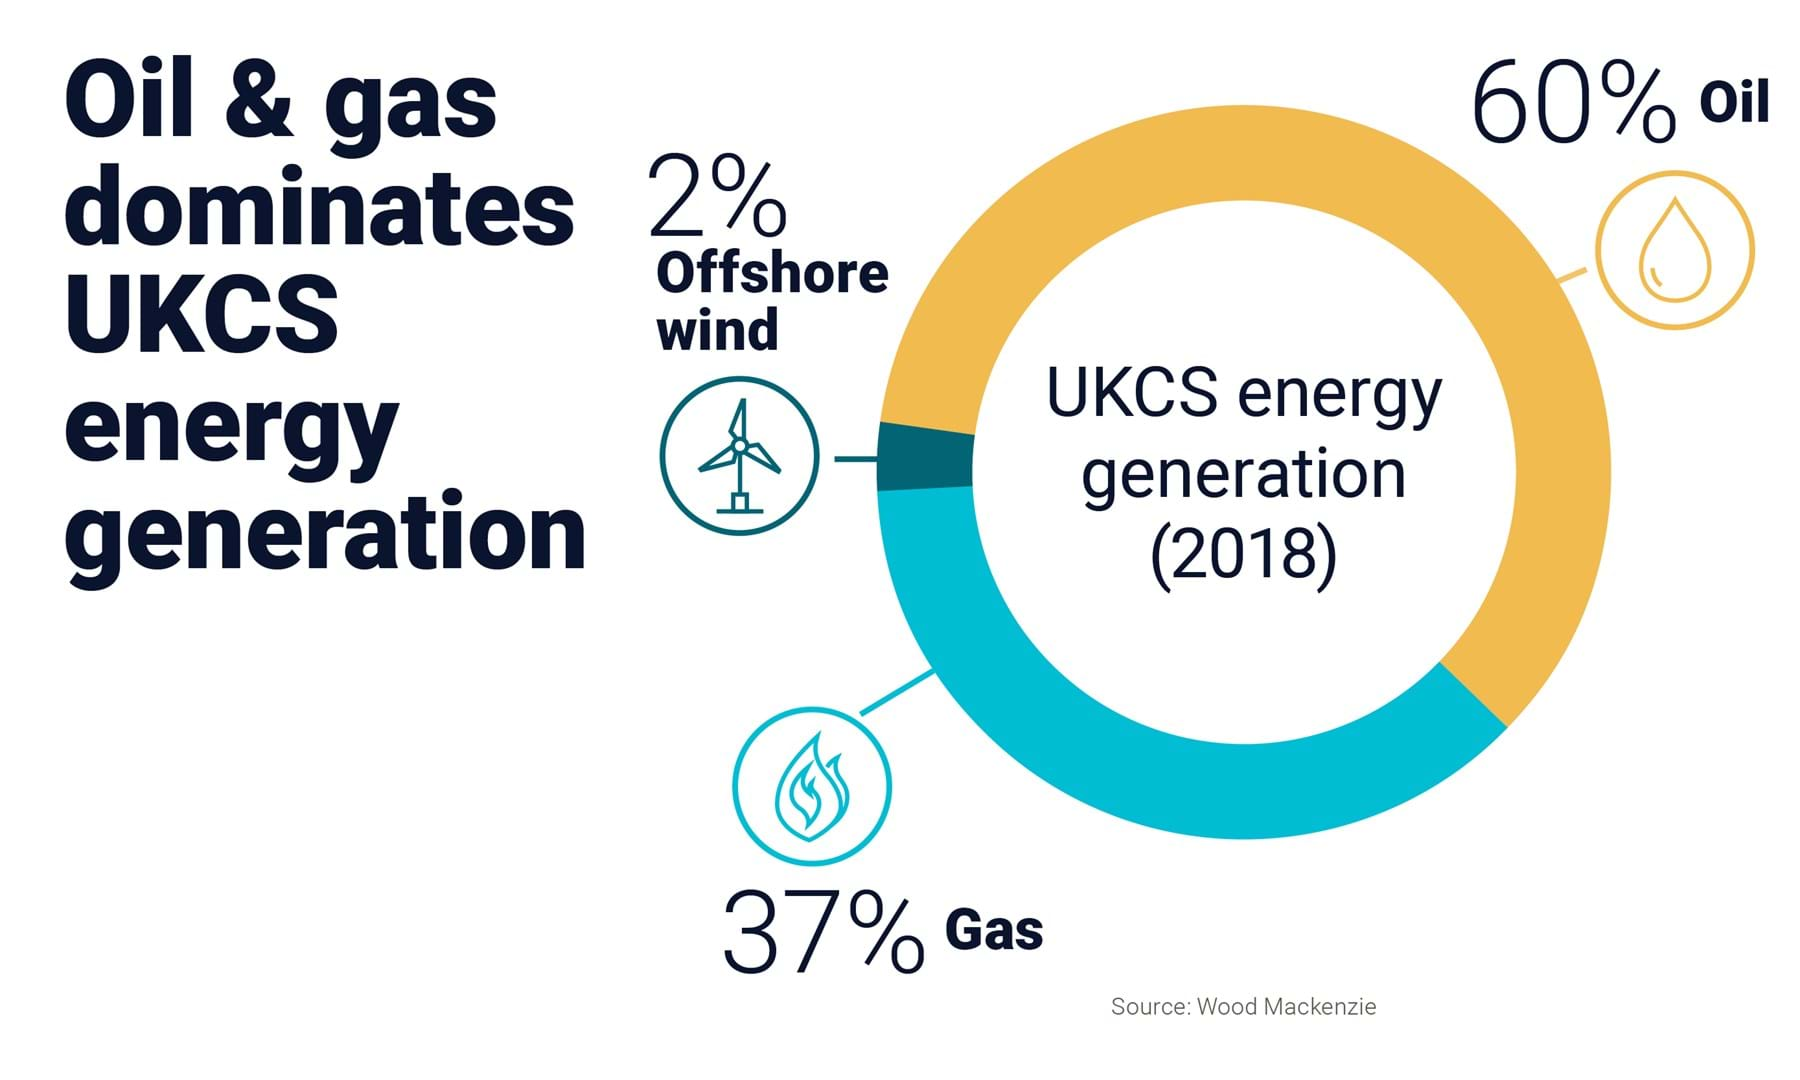 Chart shows that oil & gas dominates UKCS energy generation